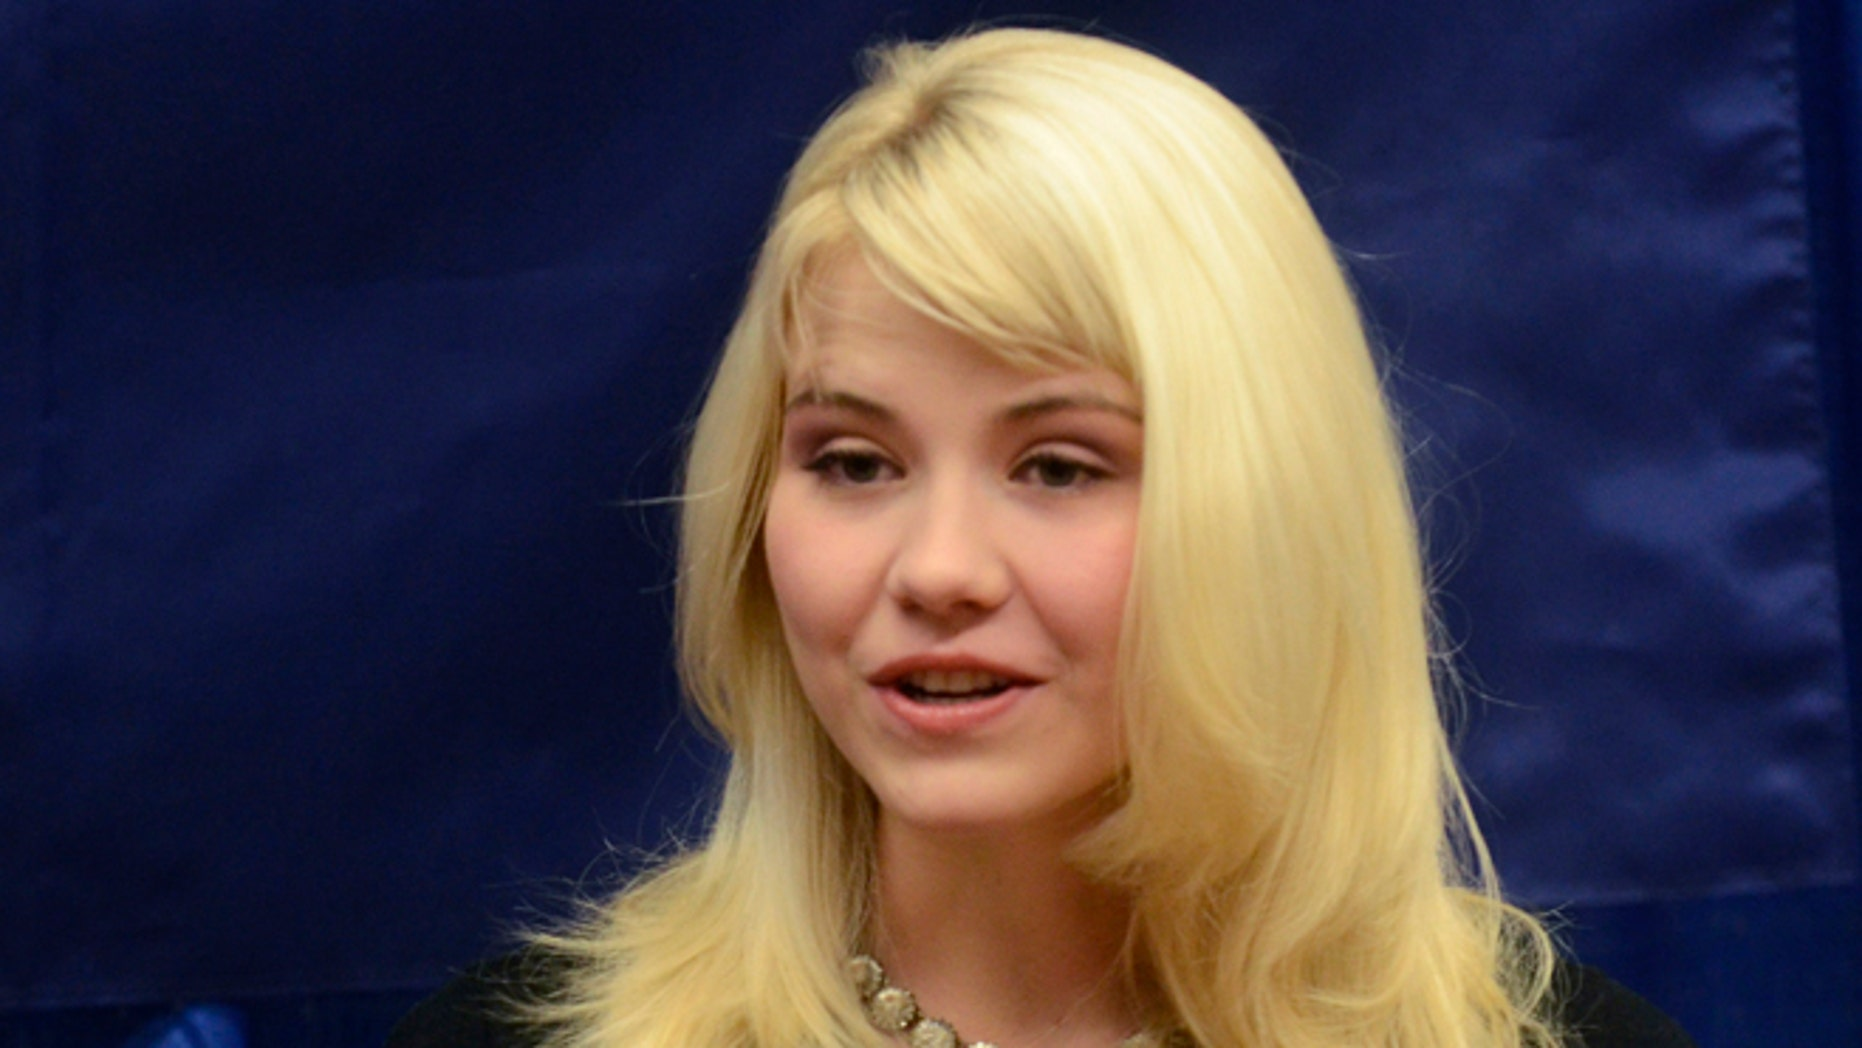 Oct. 30, 2012: In this file photo, Elizabeth Smart speaks to reporters regarding her advocacy of child protection and the healing process she has experienced, prior to her presentation at the Child Sexual Abuse Conference, in State College, Pa.